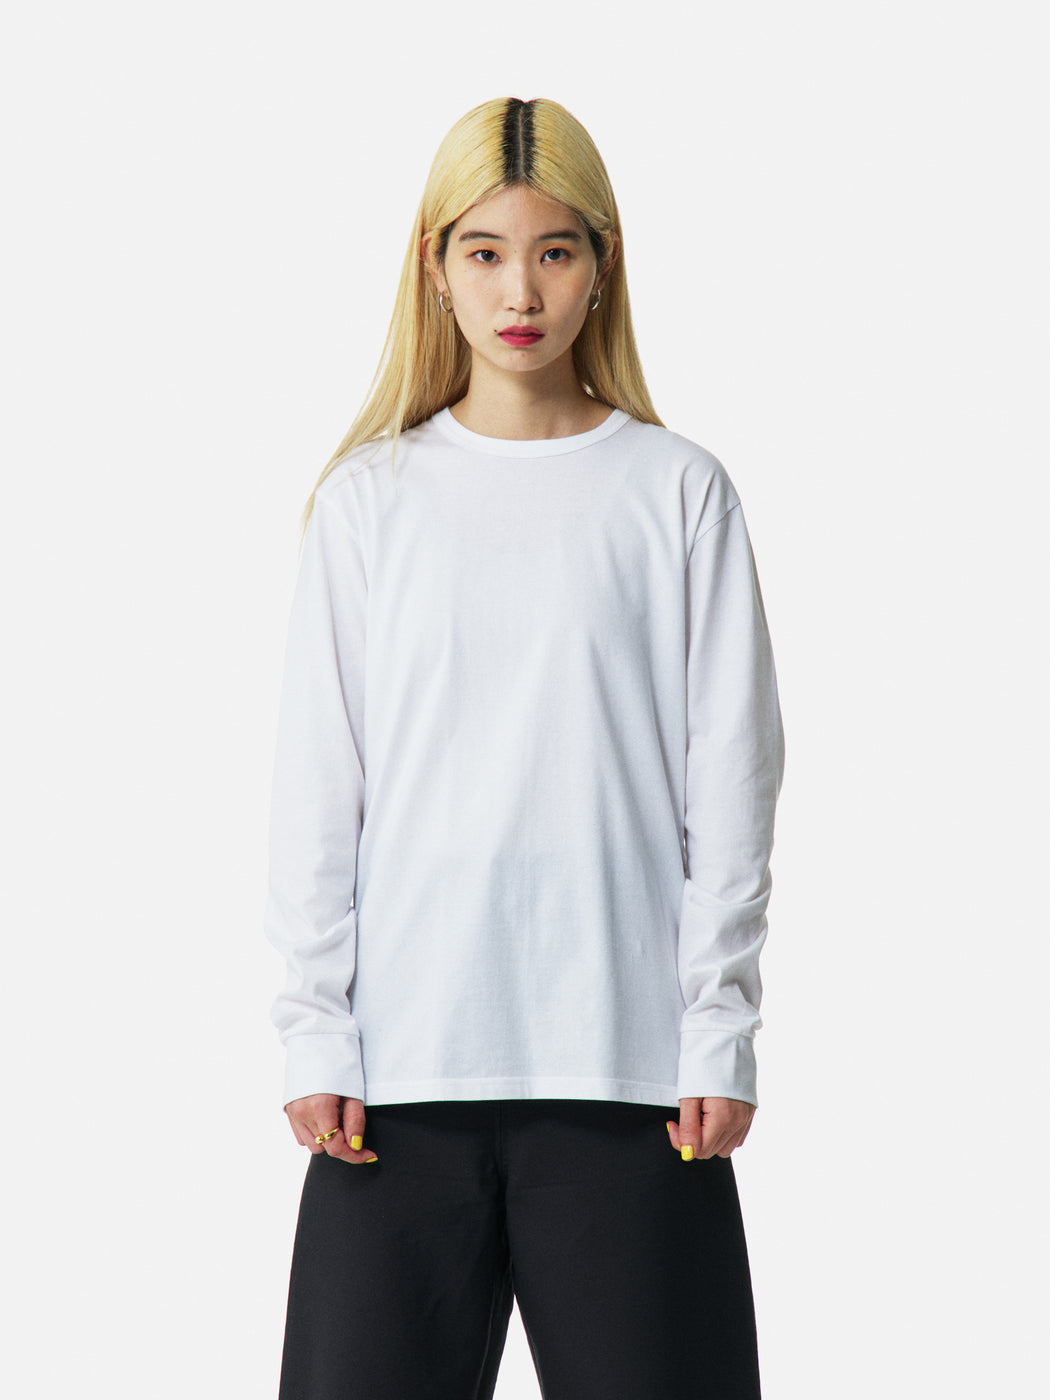 Shirt Fabrics Long Sleeve T-shirt